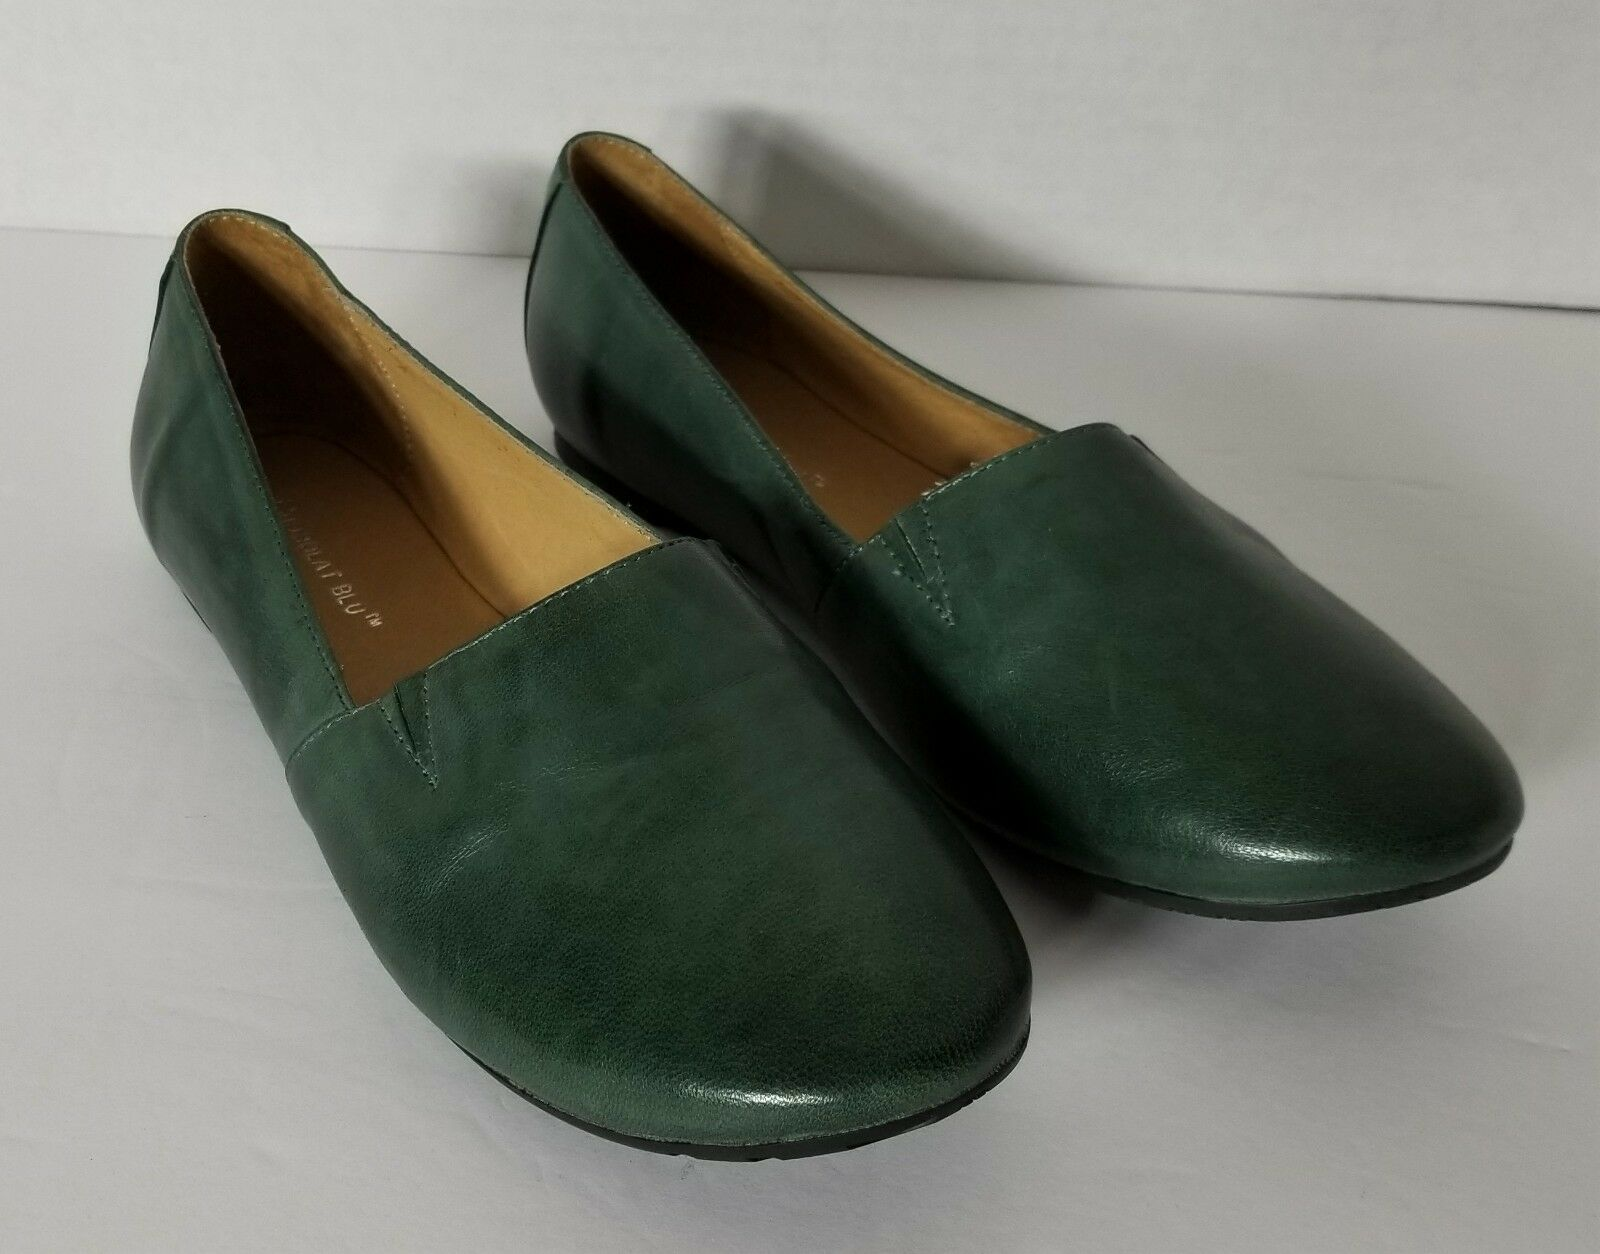 Chocolat blue Alexa Flats Forest Green Leather Size 6.5